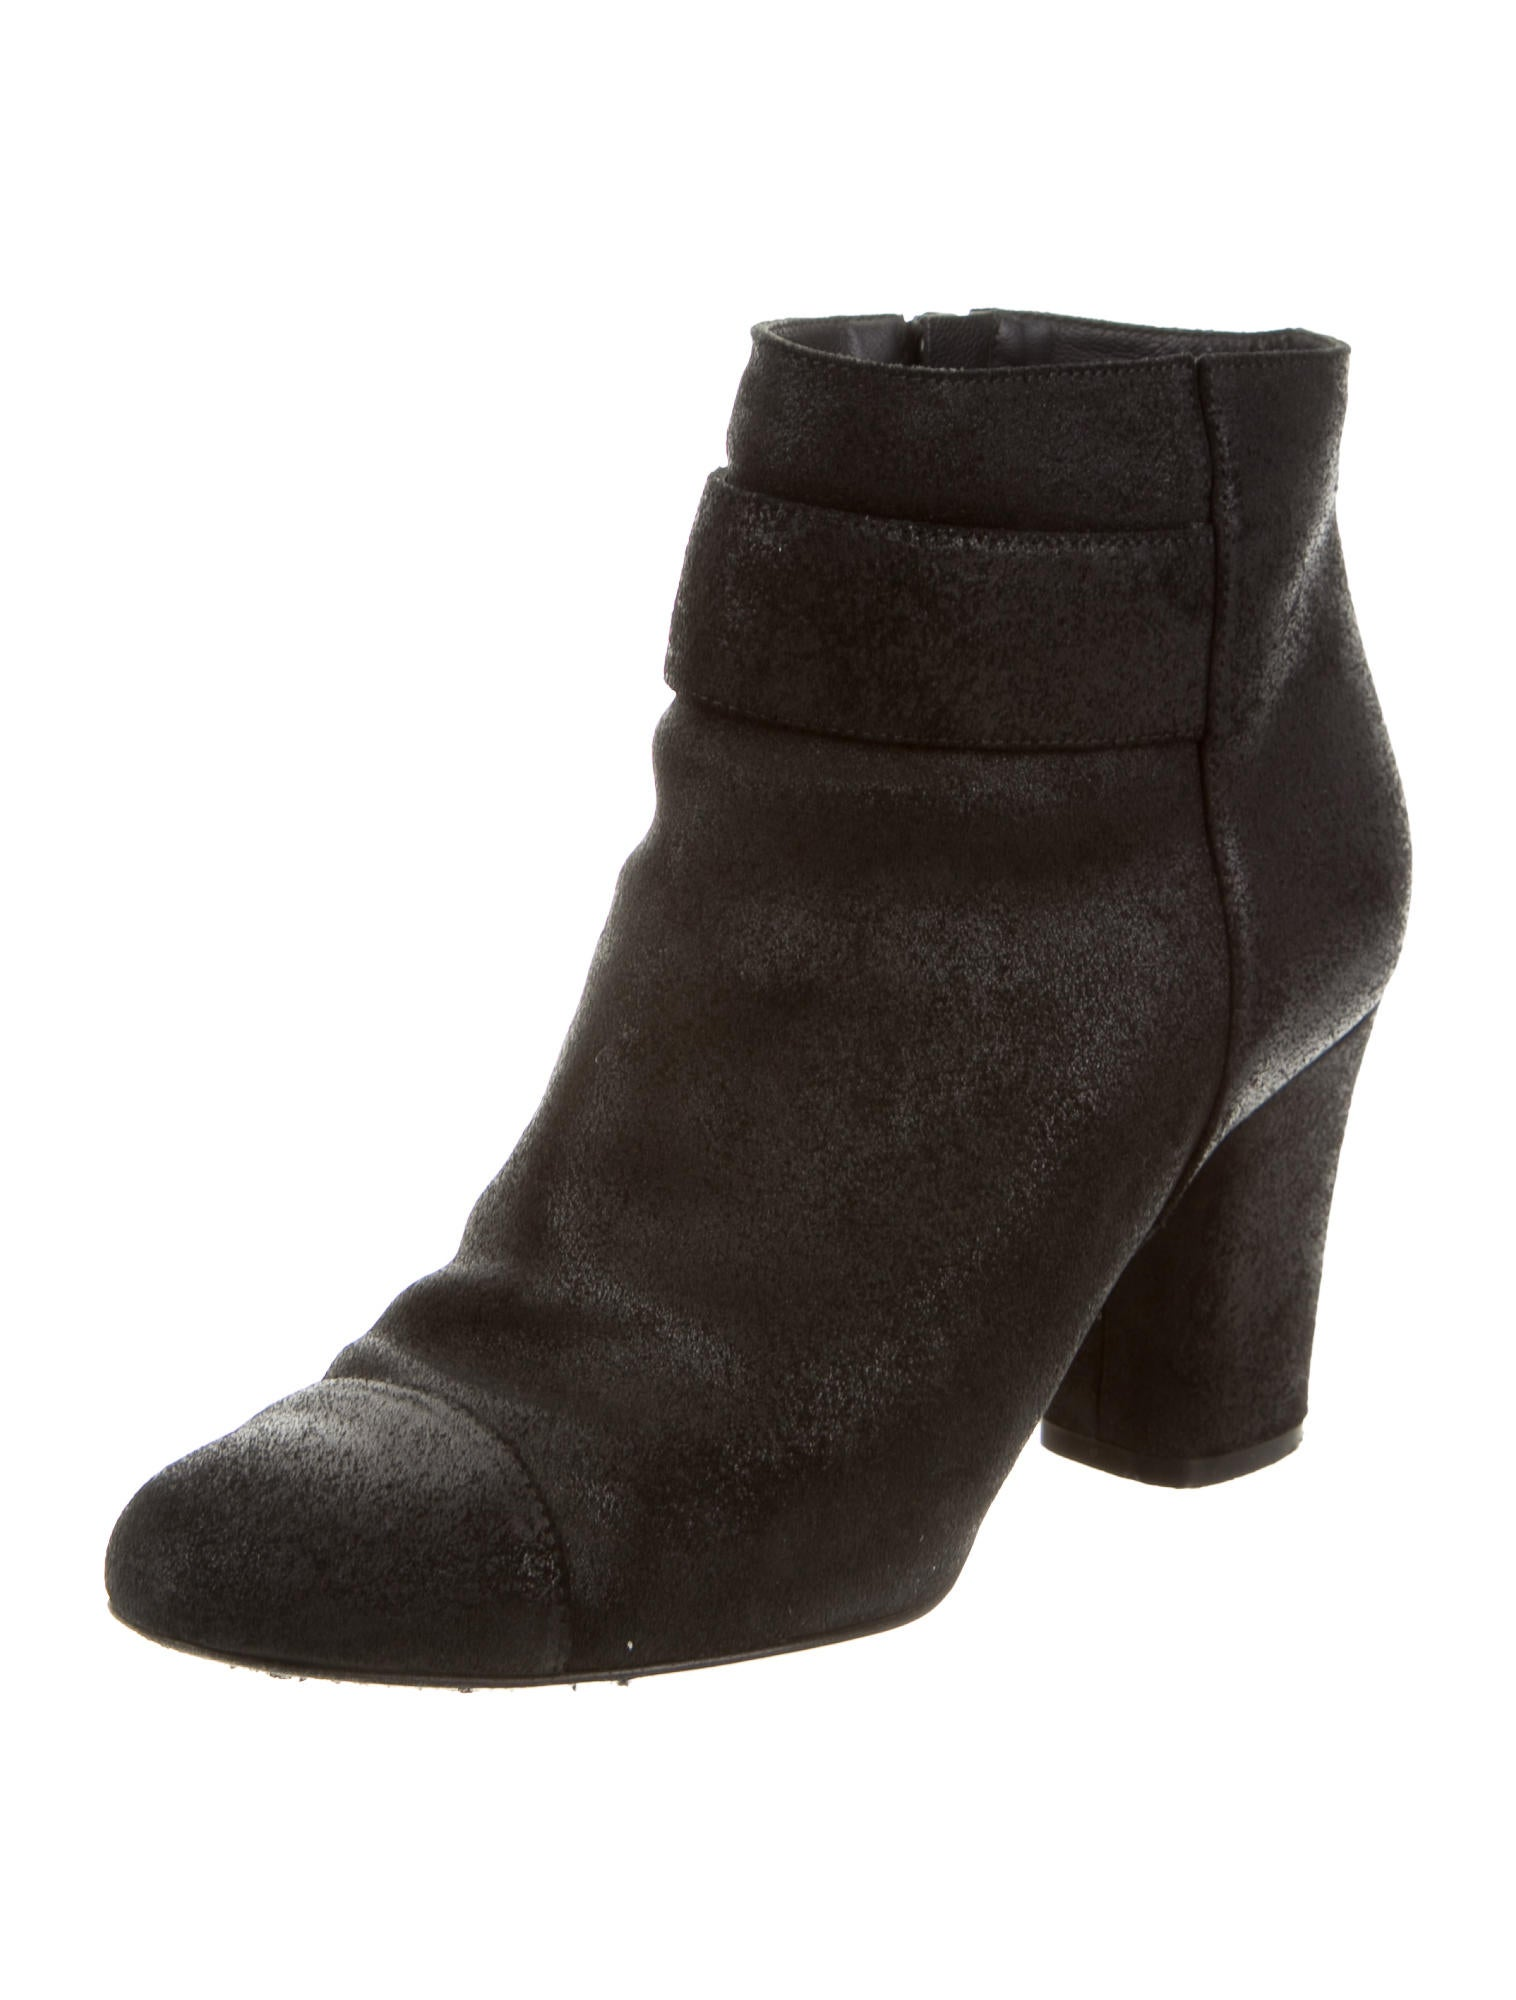 chanel suede cc ankle boots shoes cha128852 the realreal